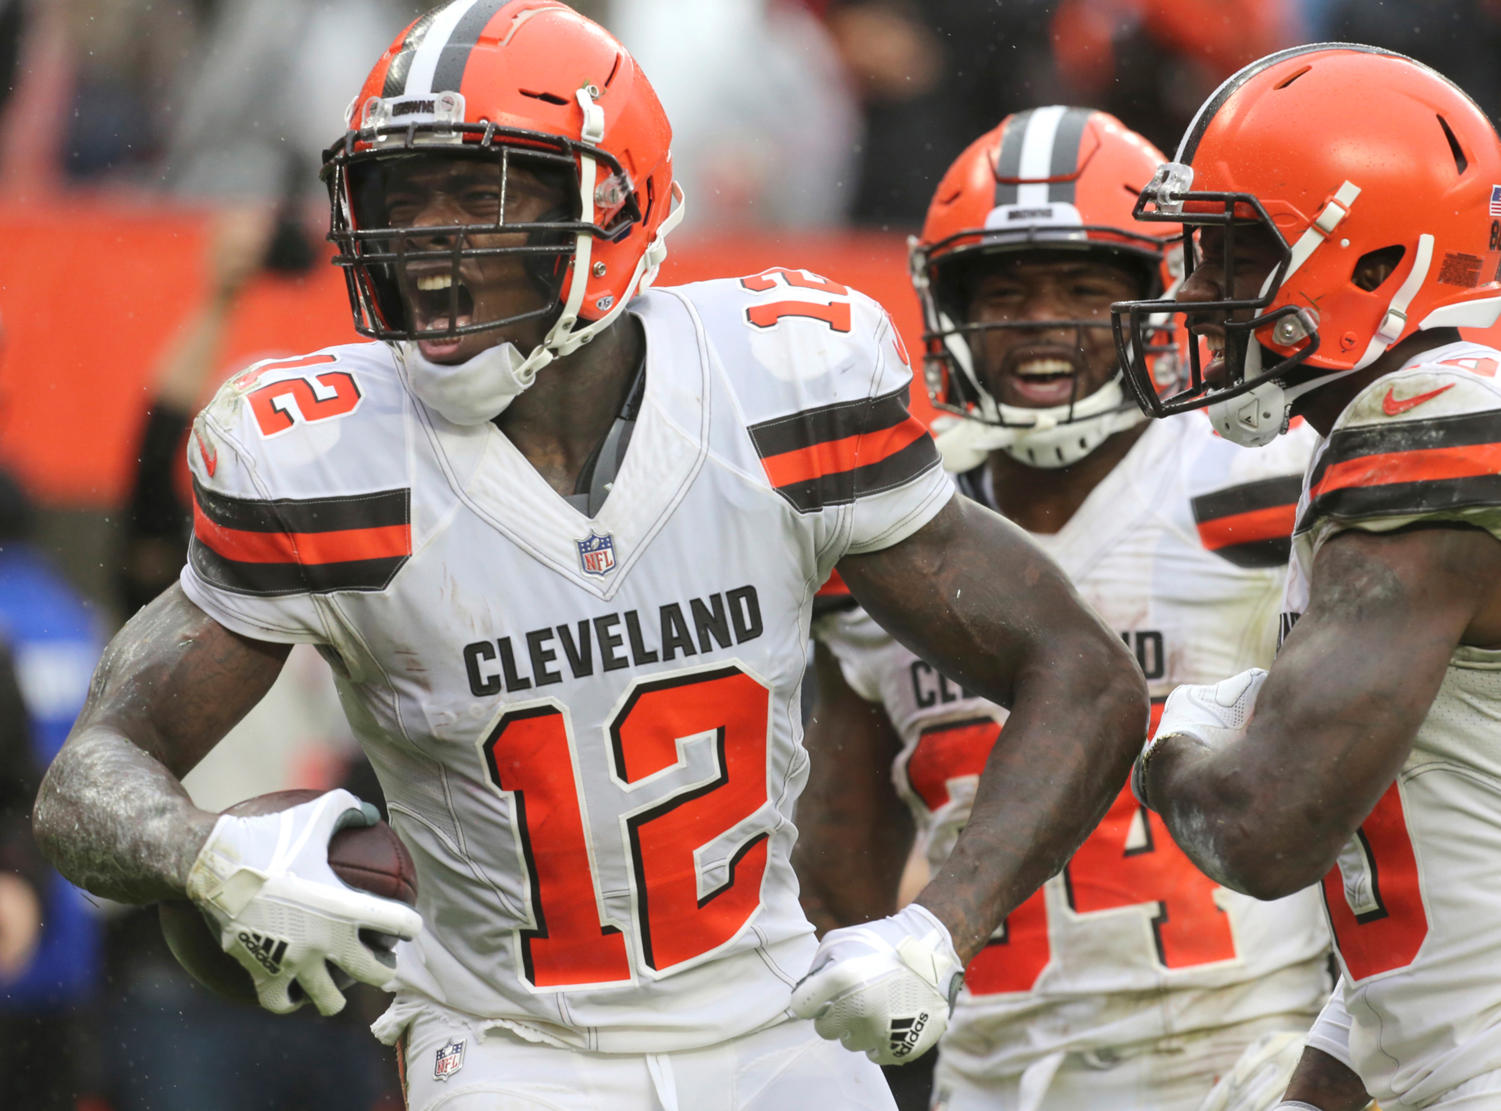 Josh Gordon celebrates his fourth quarter touchdown against the Pittsburgh Steelers on Sunday, Sept. 9, at FirstEnergy Stadium in Cleveland. The game ended in a 21-21 tie. (Phil Masturzo/Beacon Journal/TNS)